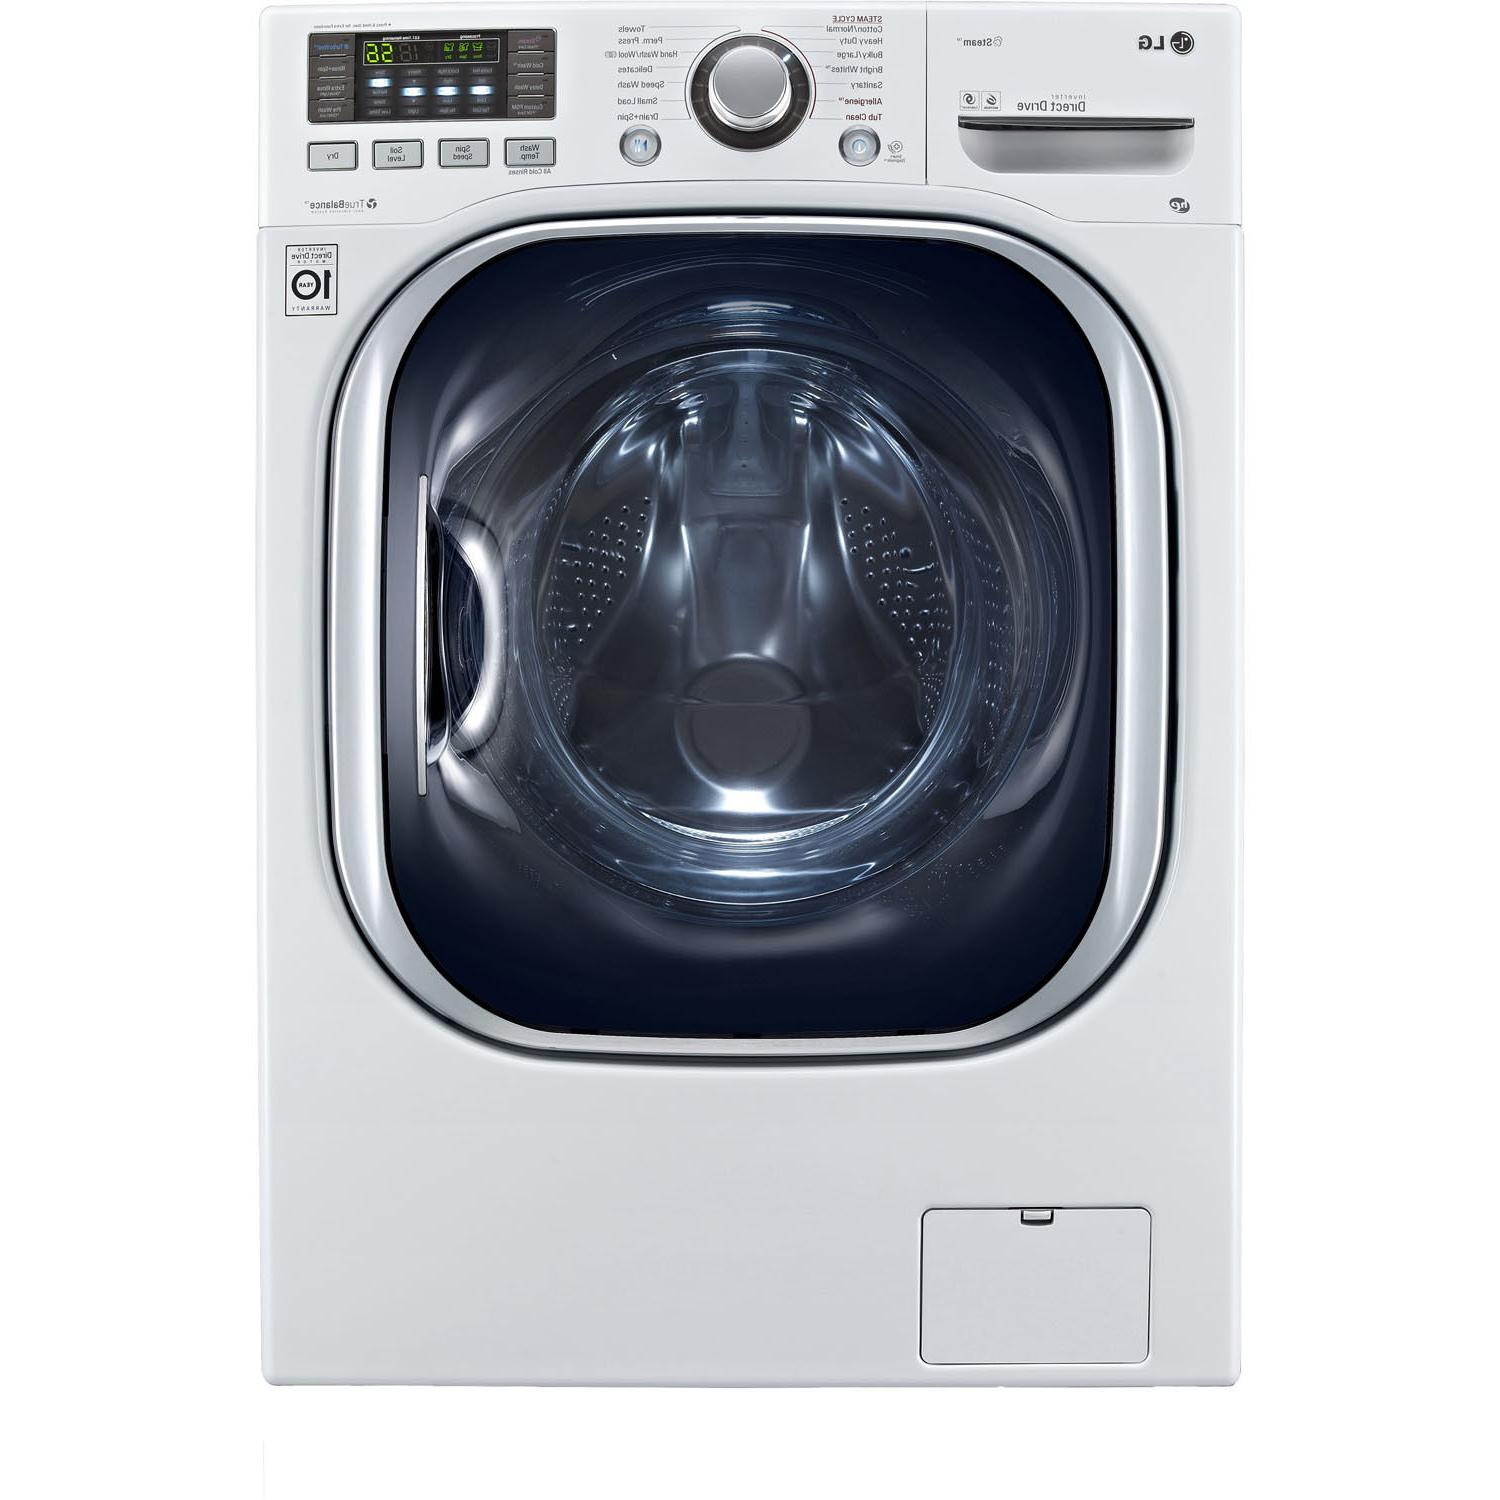 LG Cu. Ft. Washer/Dryer TrueBalance Stainless Steel Drum, Cycle in White